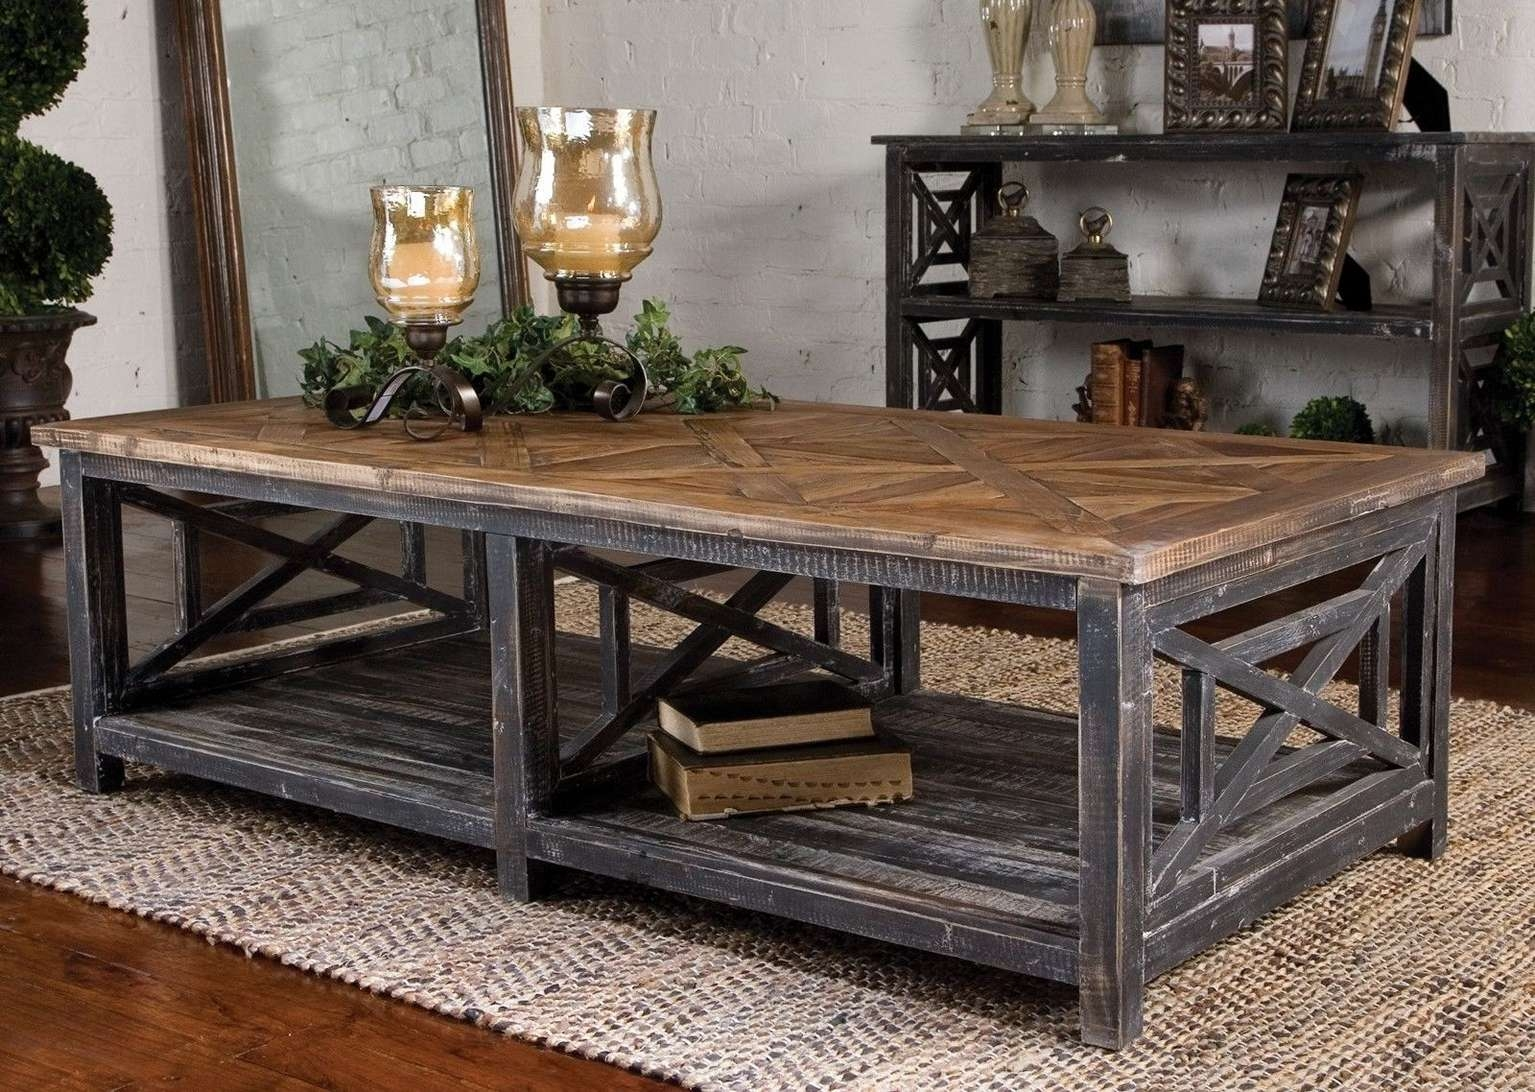 Fantastic Rustic Coffee Tables Decor – Matt And Jentry Home Design With Regard To Best And Newest Rustic Coffee Tables (View 8 of 20)